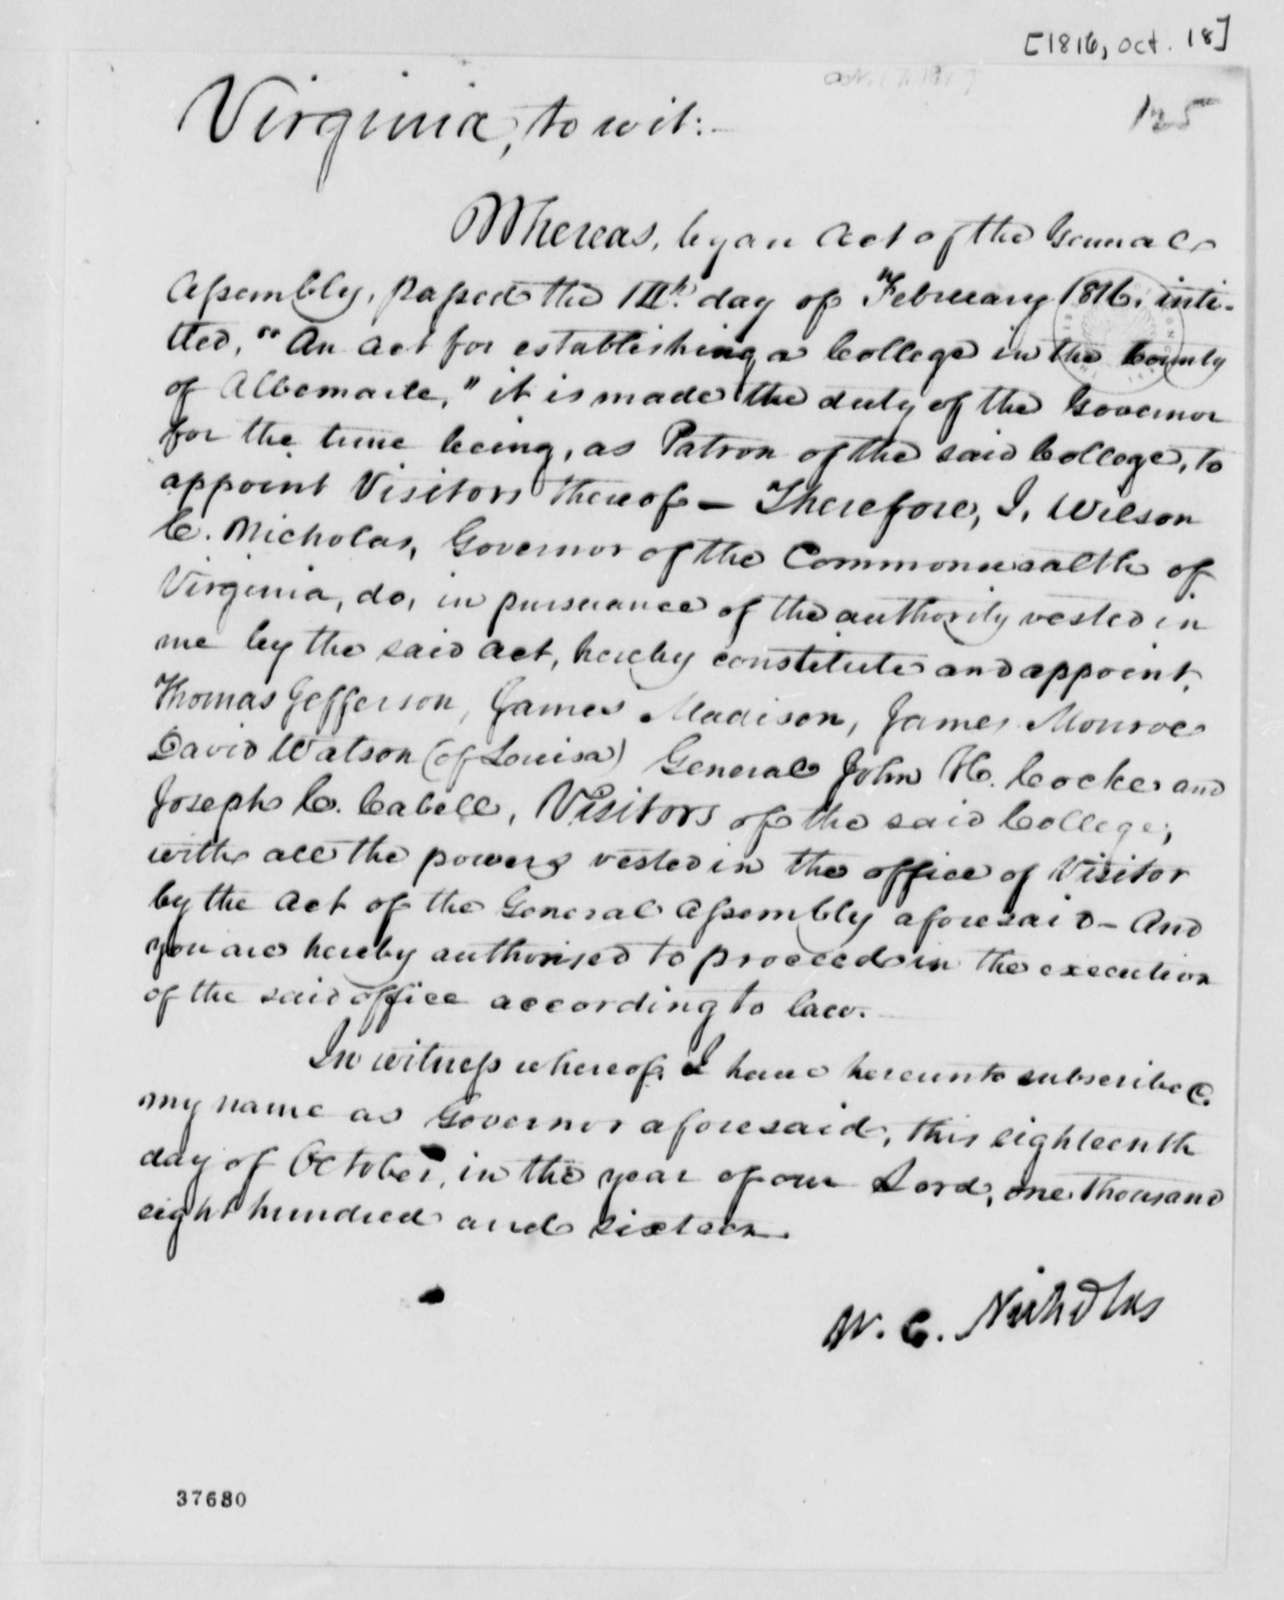 Wilson Cary Nicholas, October 18, 1816, Central College Appointment